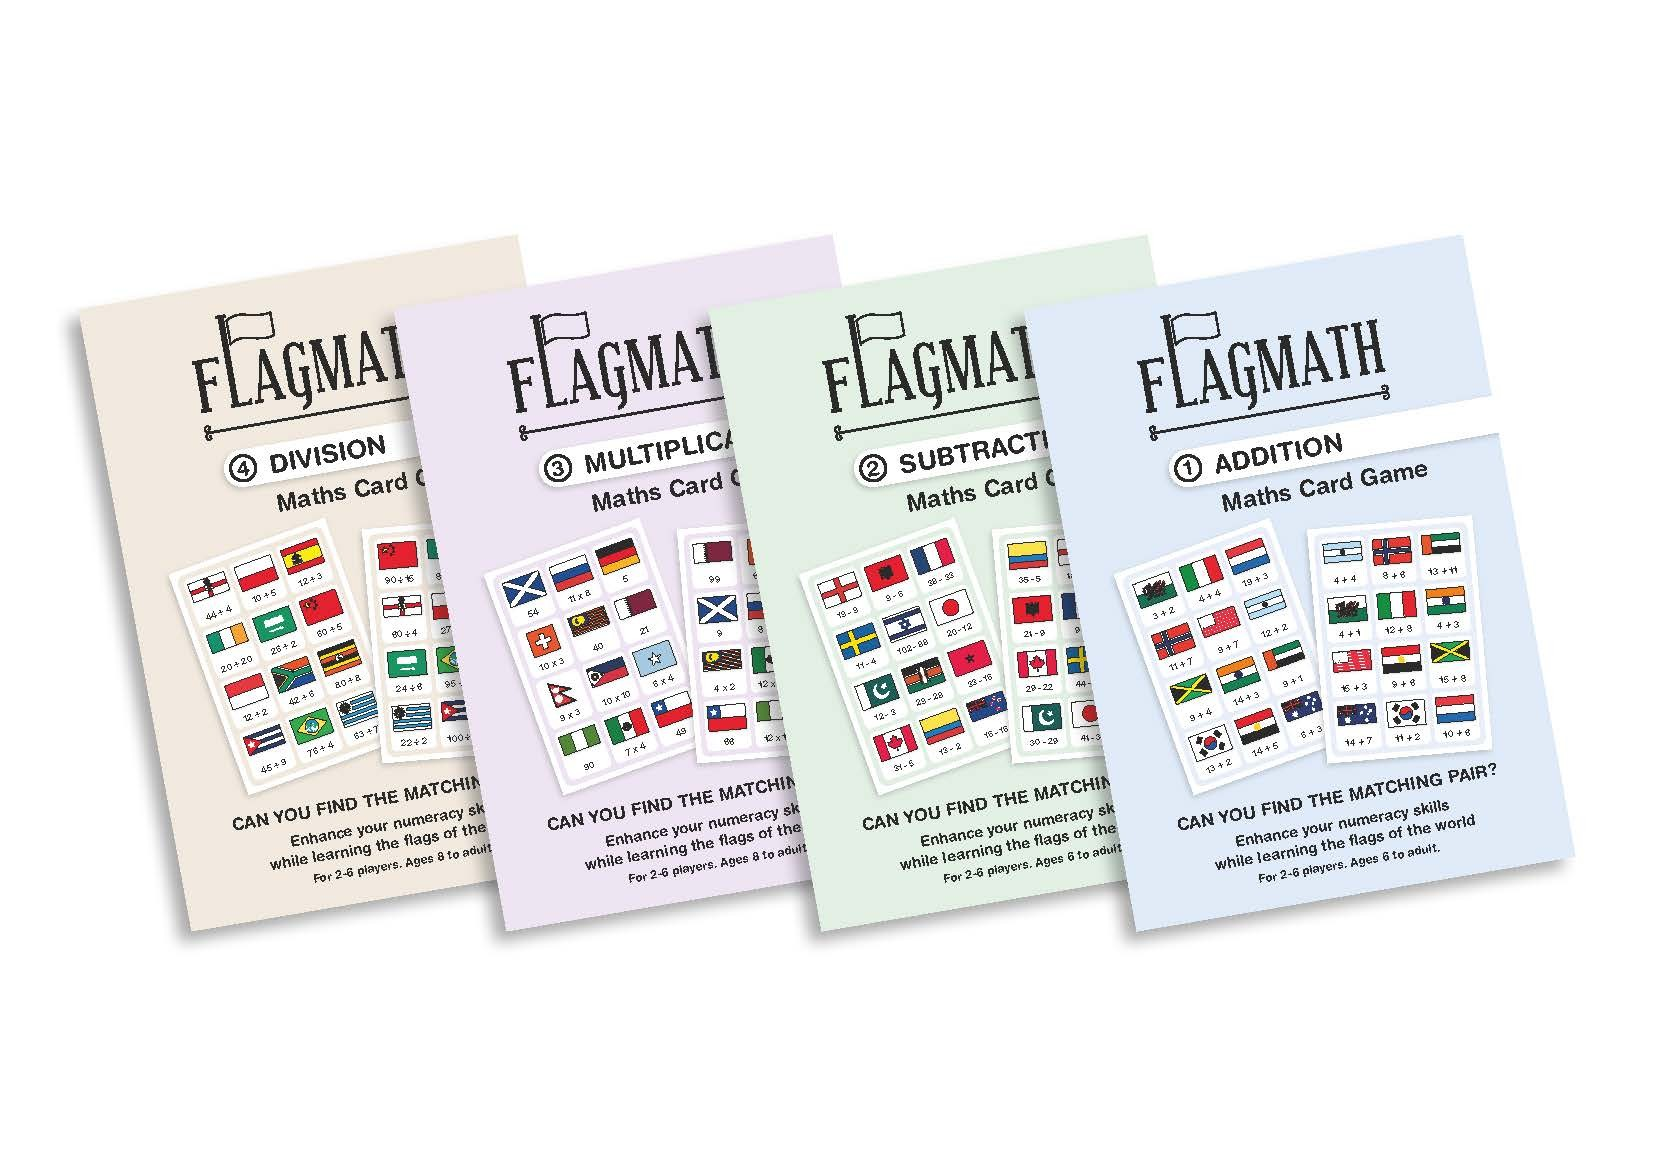 FlagMath - Set of 4 Mathematics Card Games